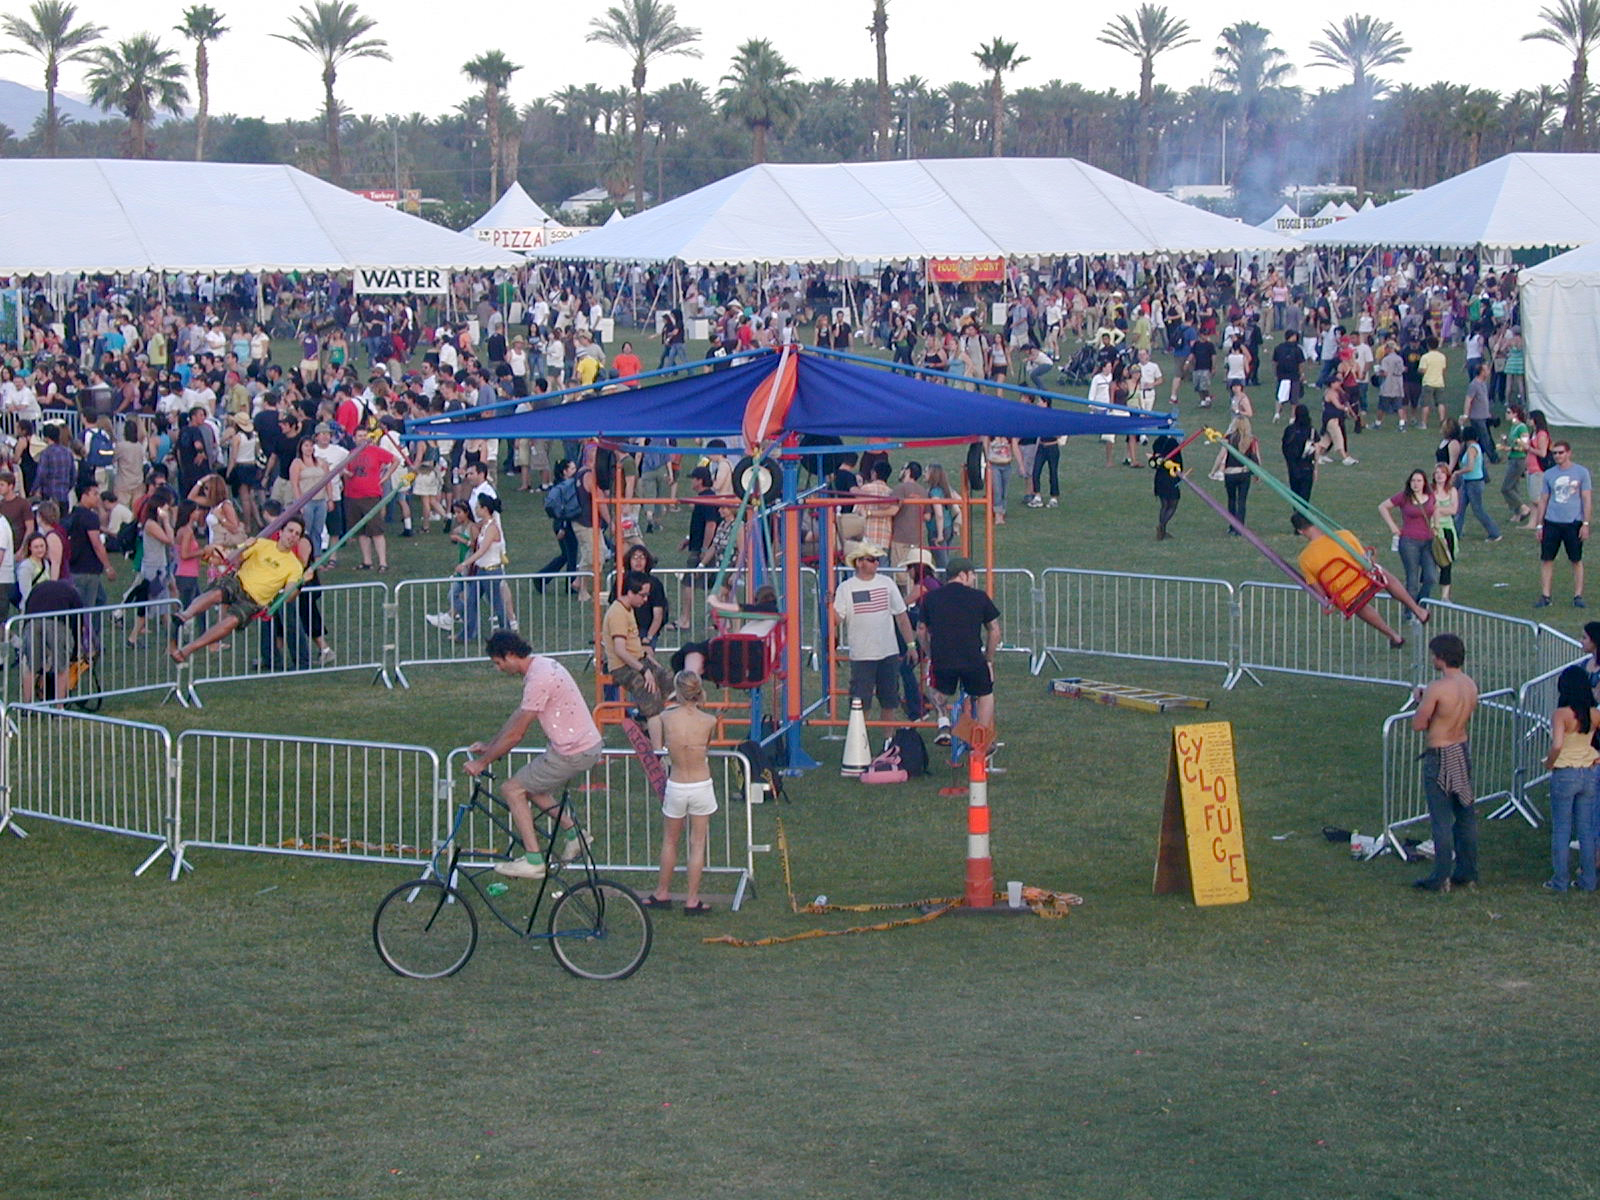 Cyclofuge at Coachella by Laird